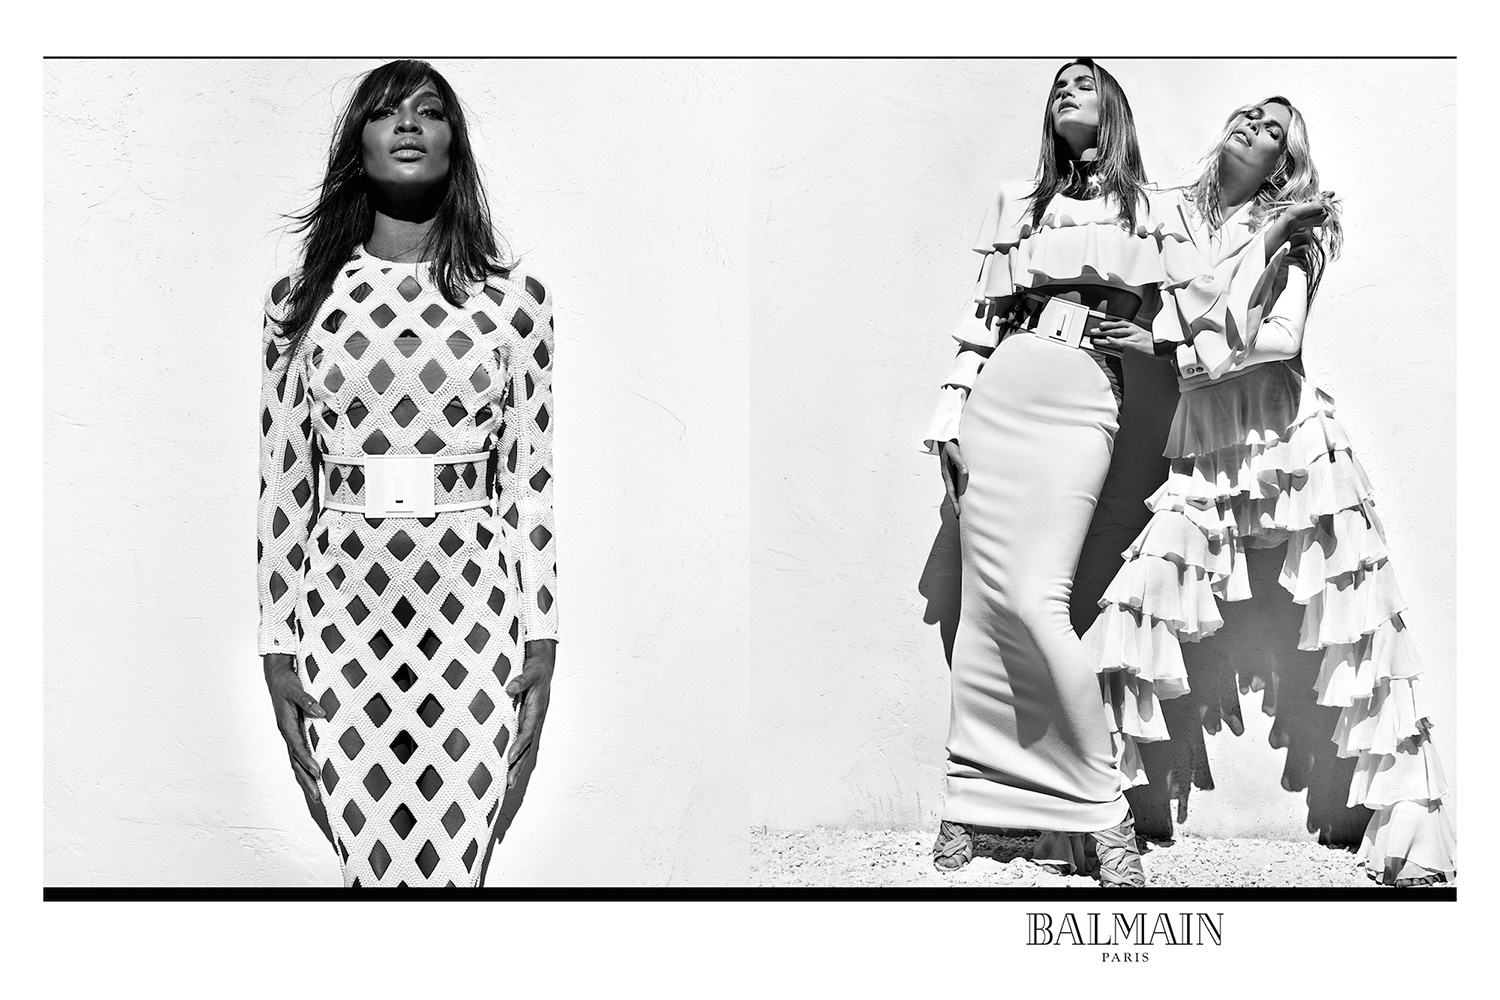 Balmain choisit Naomi Campbell, Cindy Crawford et Claudia Schiffer pour sa campagne spring 2016